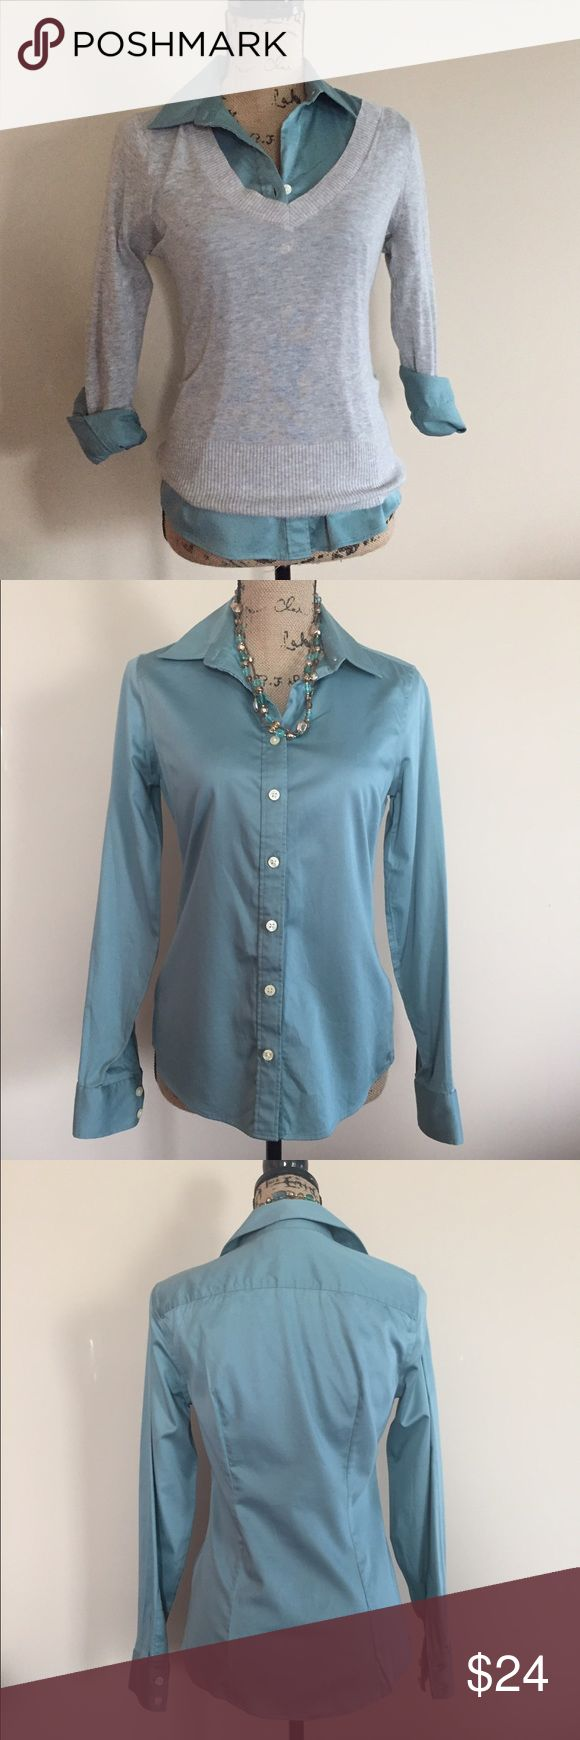 """Banana Republic non iron shirt Pretty muted teal sateen button down shirt from Banana Republic. Non iron, fitted, gentle stretch. Size 4. Excellent condition. Bust measures 17"""", length 24"""". 97% cotton, 3% Lycra spandex. Banana Republic Tops Button Down Shirts"""